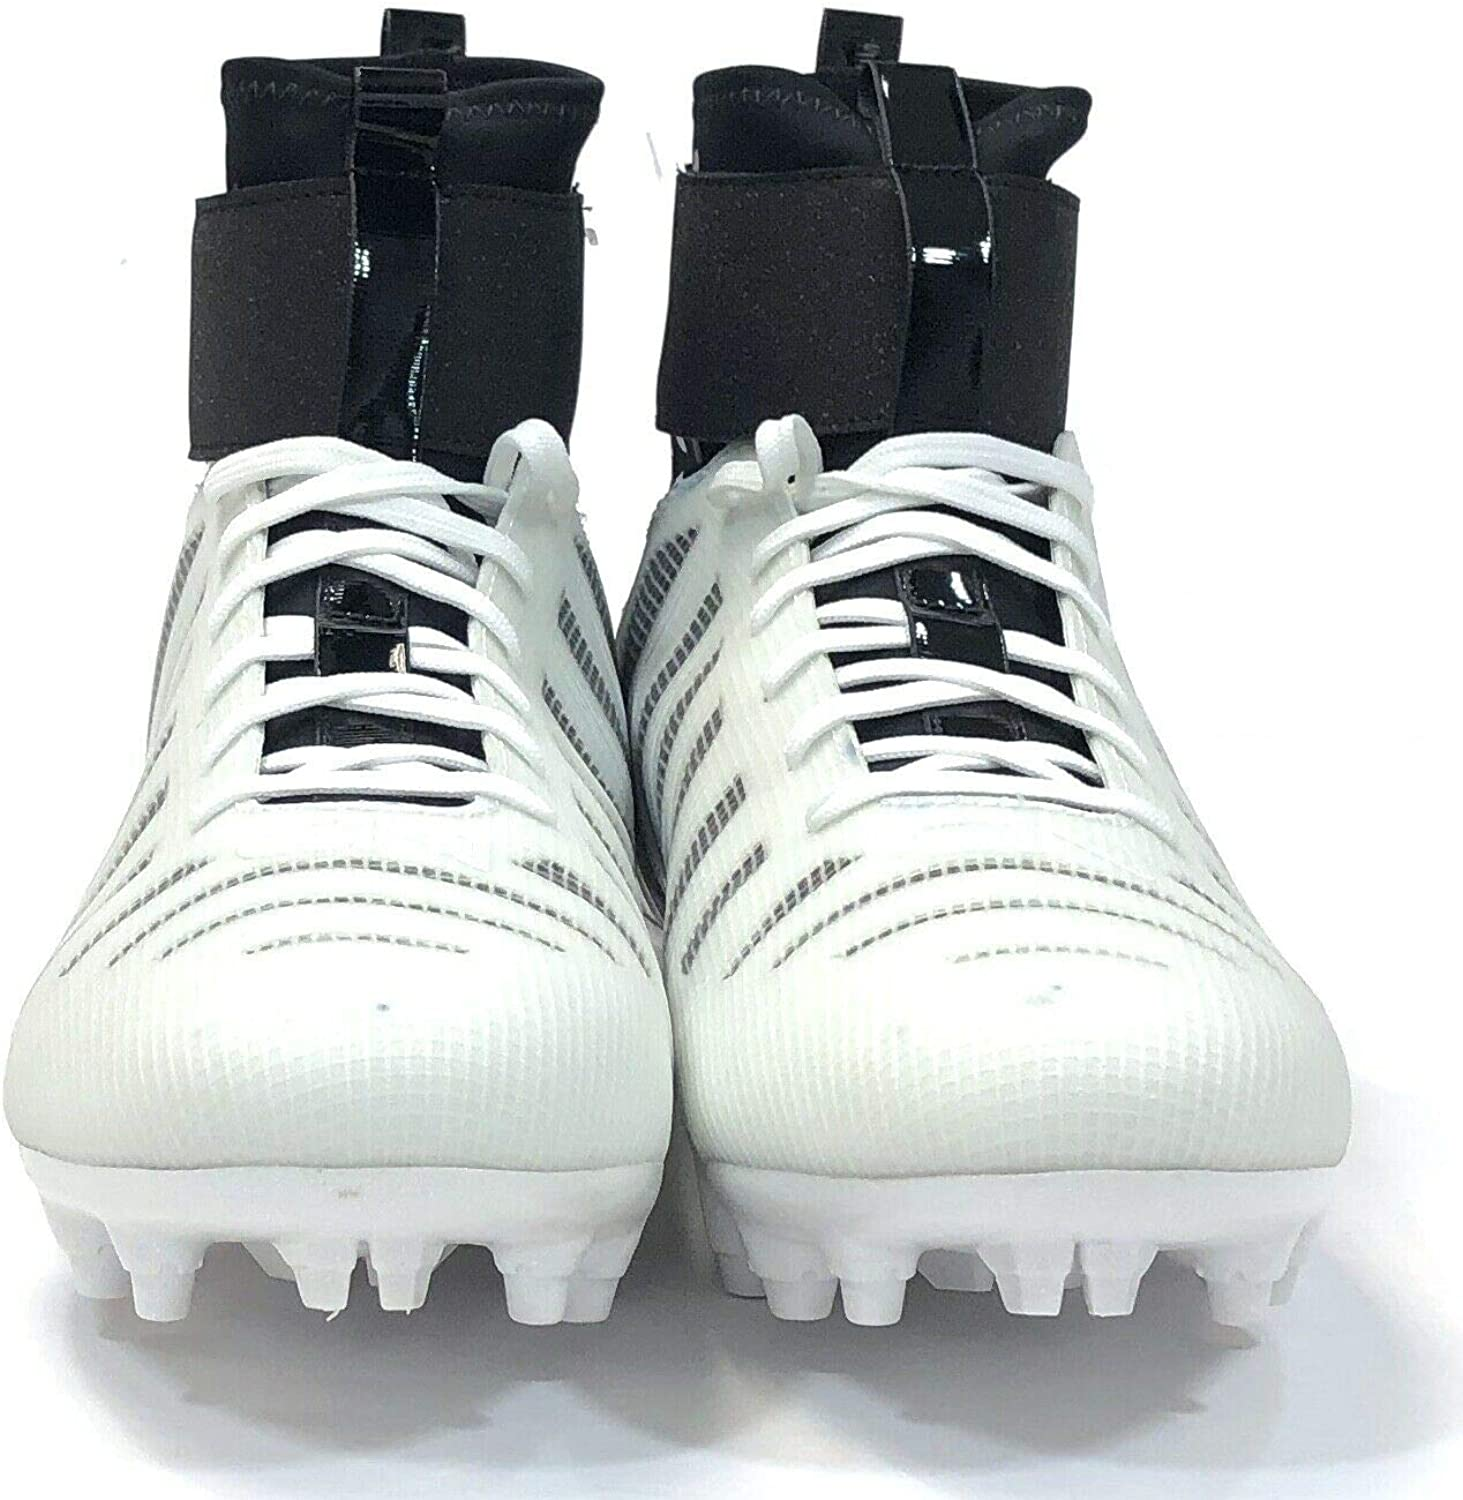 Under Armour Mens C1N MC Football Cleat